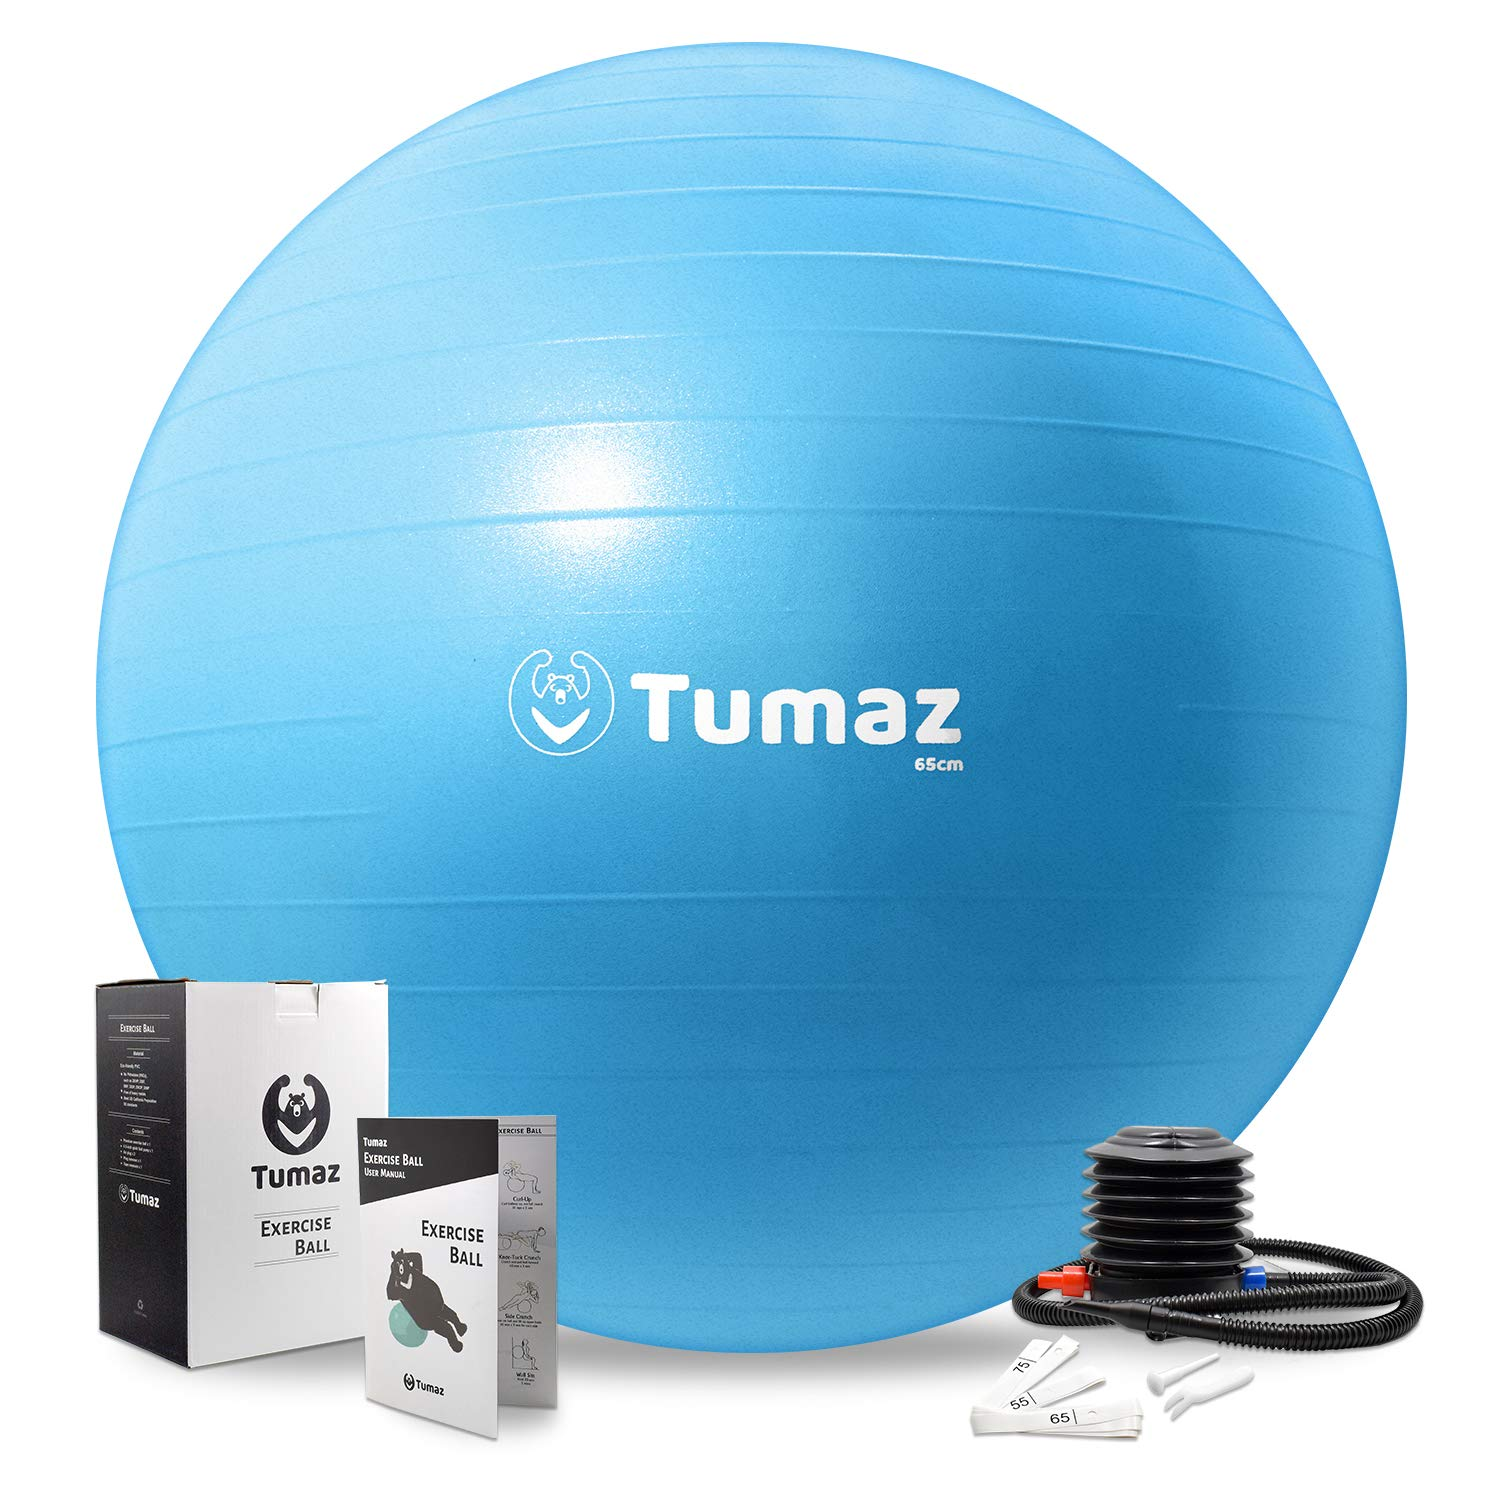 Tumaz Birth Ball Including Birthing Ball/Peri Bottle/Yoga Strap/Non-Slip Socks - Premium Birth Ball Set with Quick Foot Pump & Instruction Poster, The Perfect All-in-One Gift for Mom (Exercise Ball)